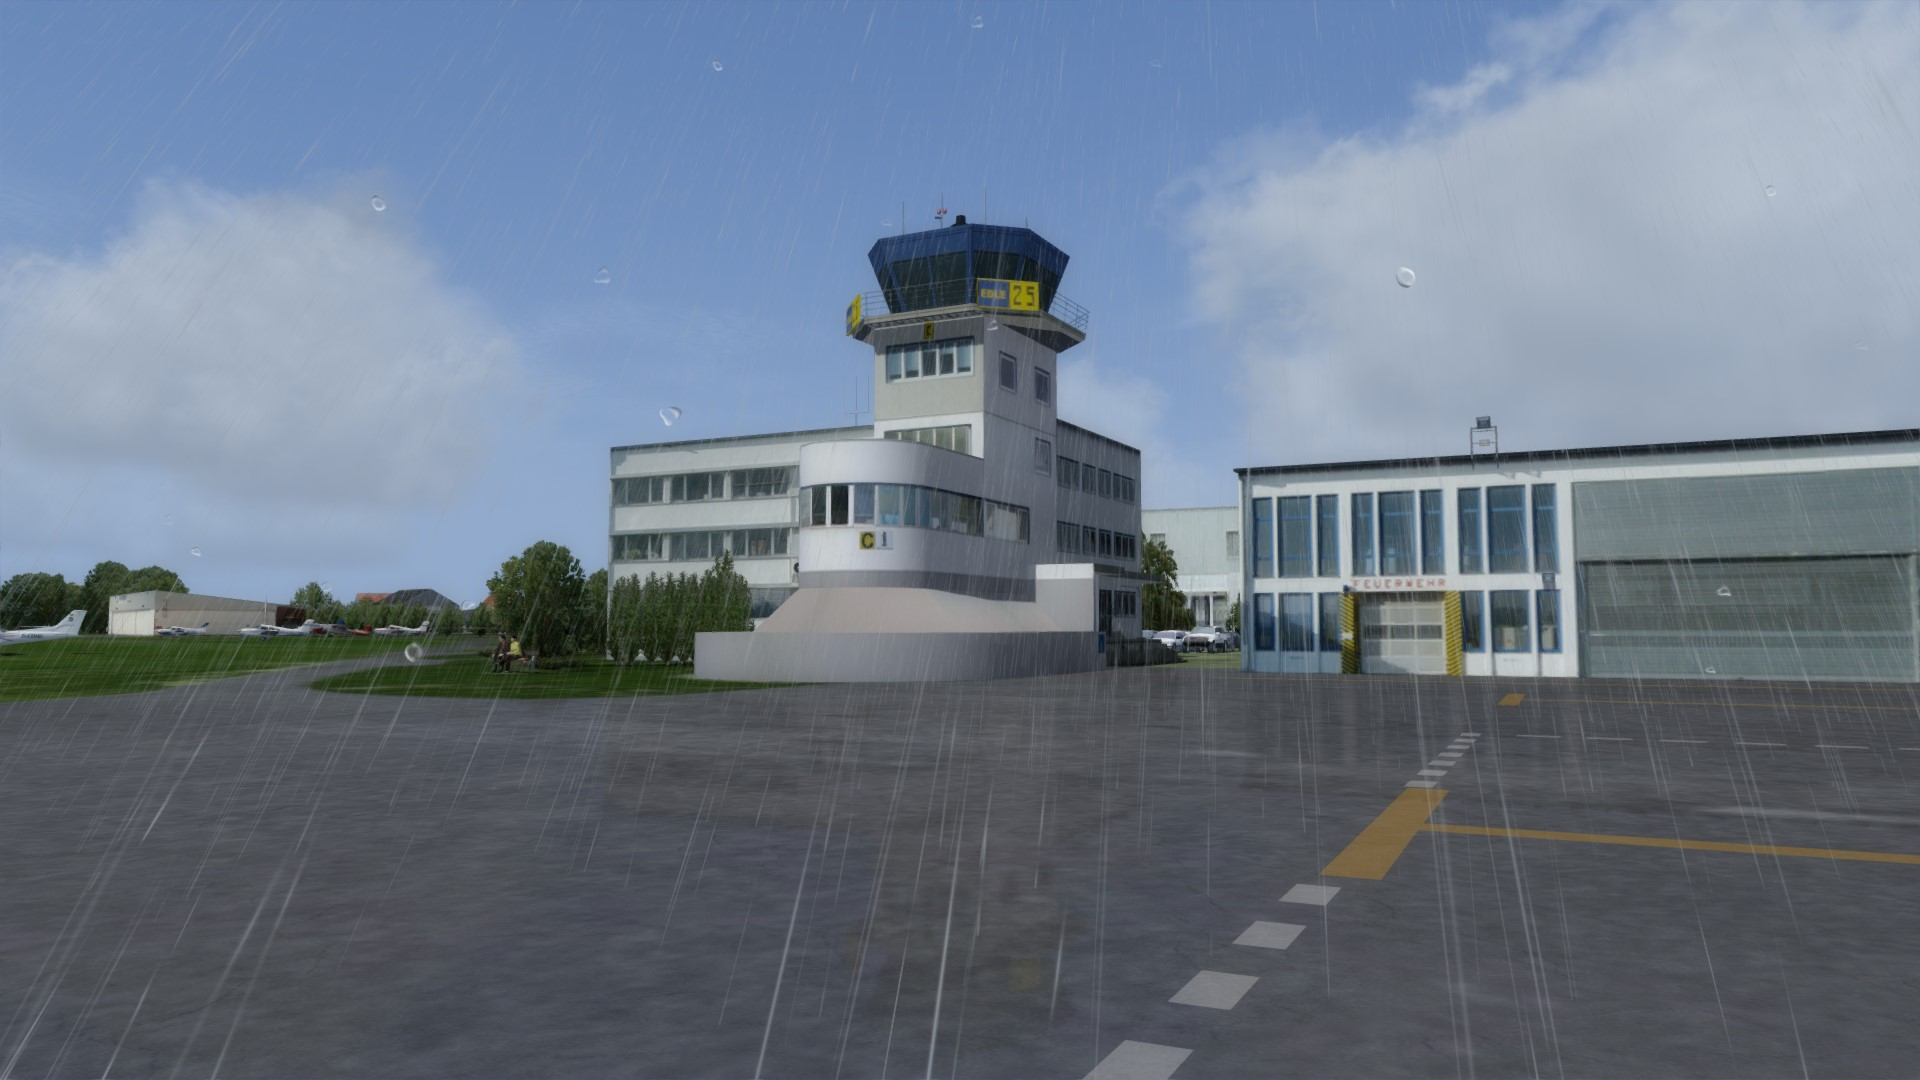 p3dv4_precipitation.jpg